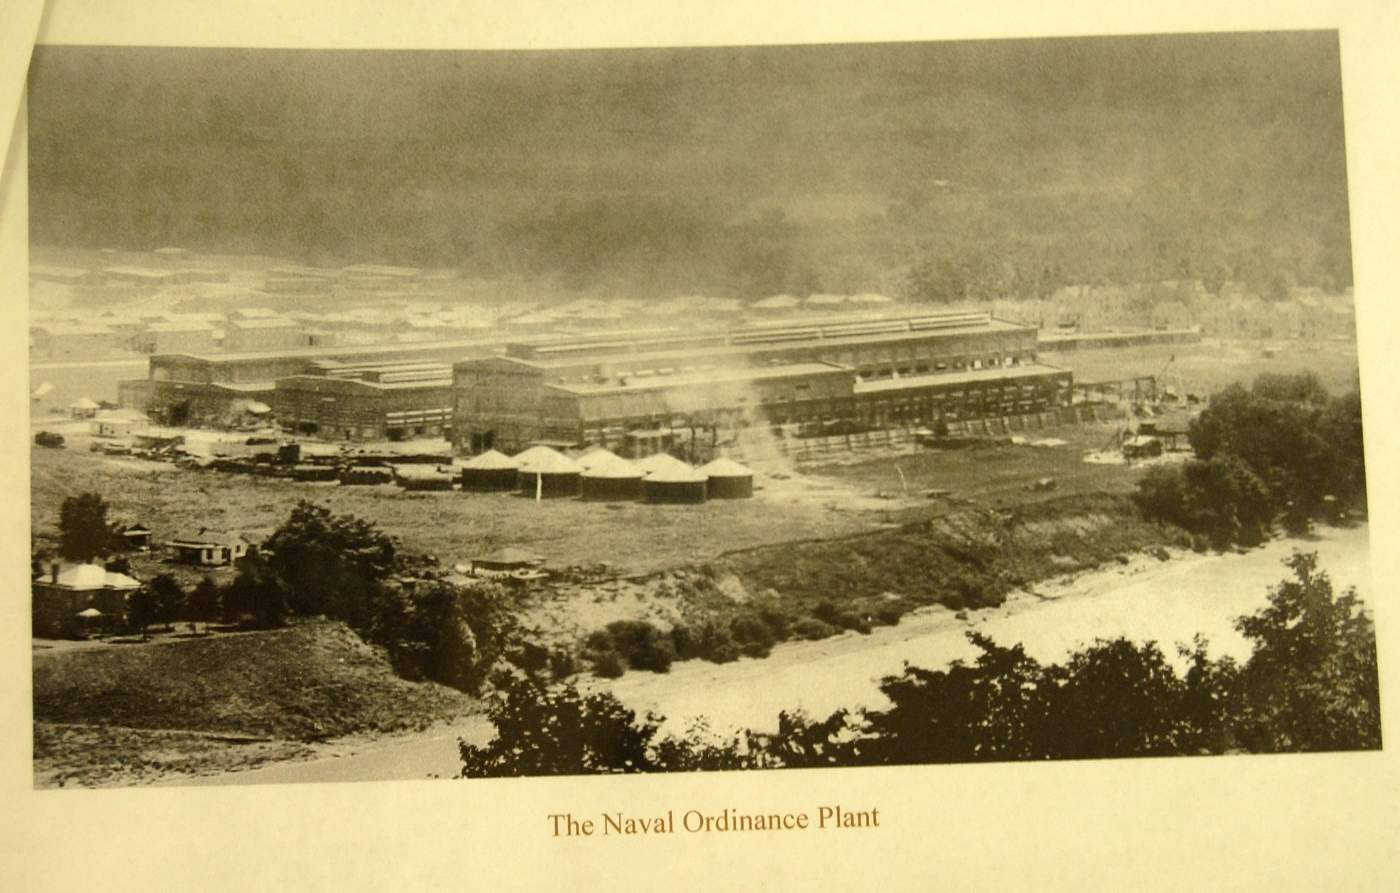 An early photo of the North Unit looking southwest, which produced gun forgings and projectiles. At upper left, the original workers' barracks are still visible, so the South Unit (not pictured) is still under construction.